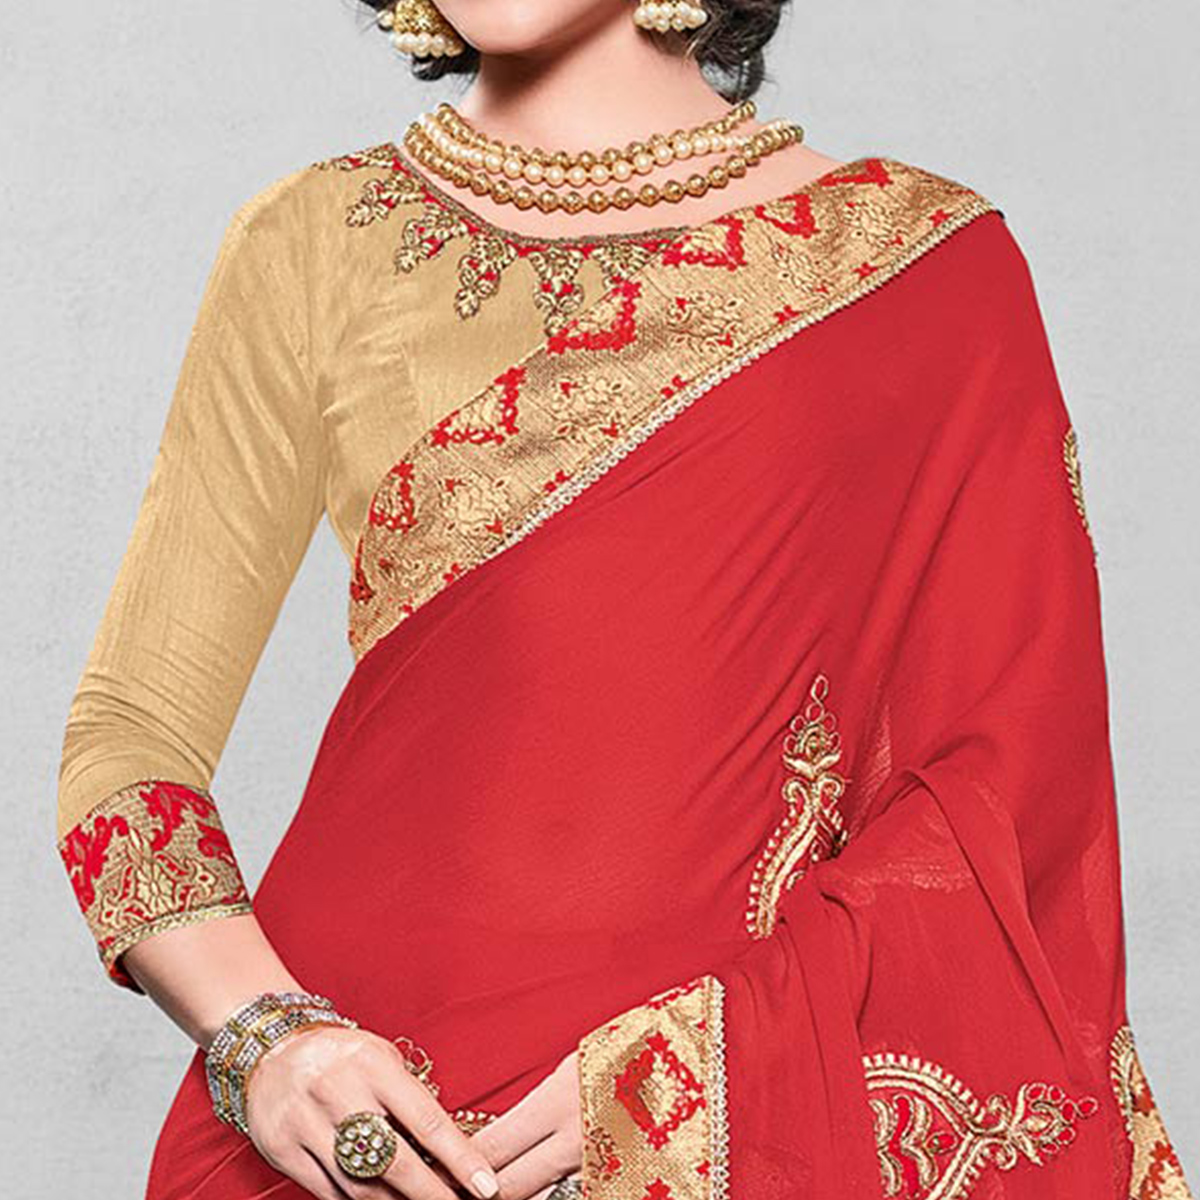 Flattering Red Colored Designer Embroidered Partywear Moss Chiffon Saree